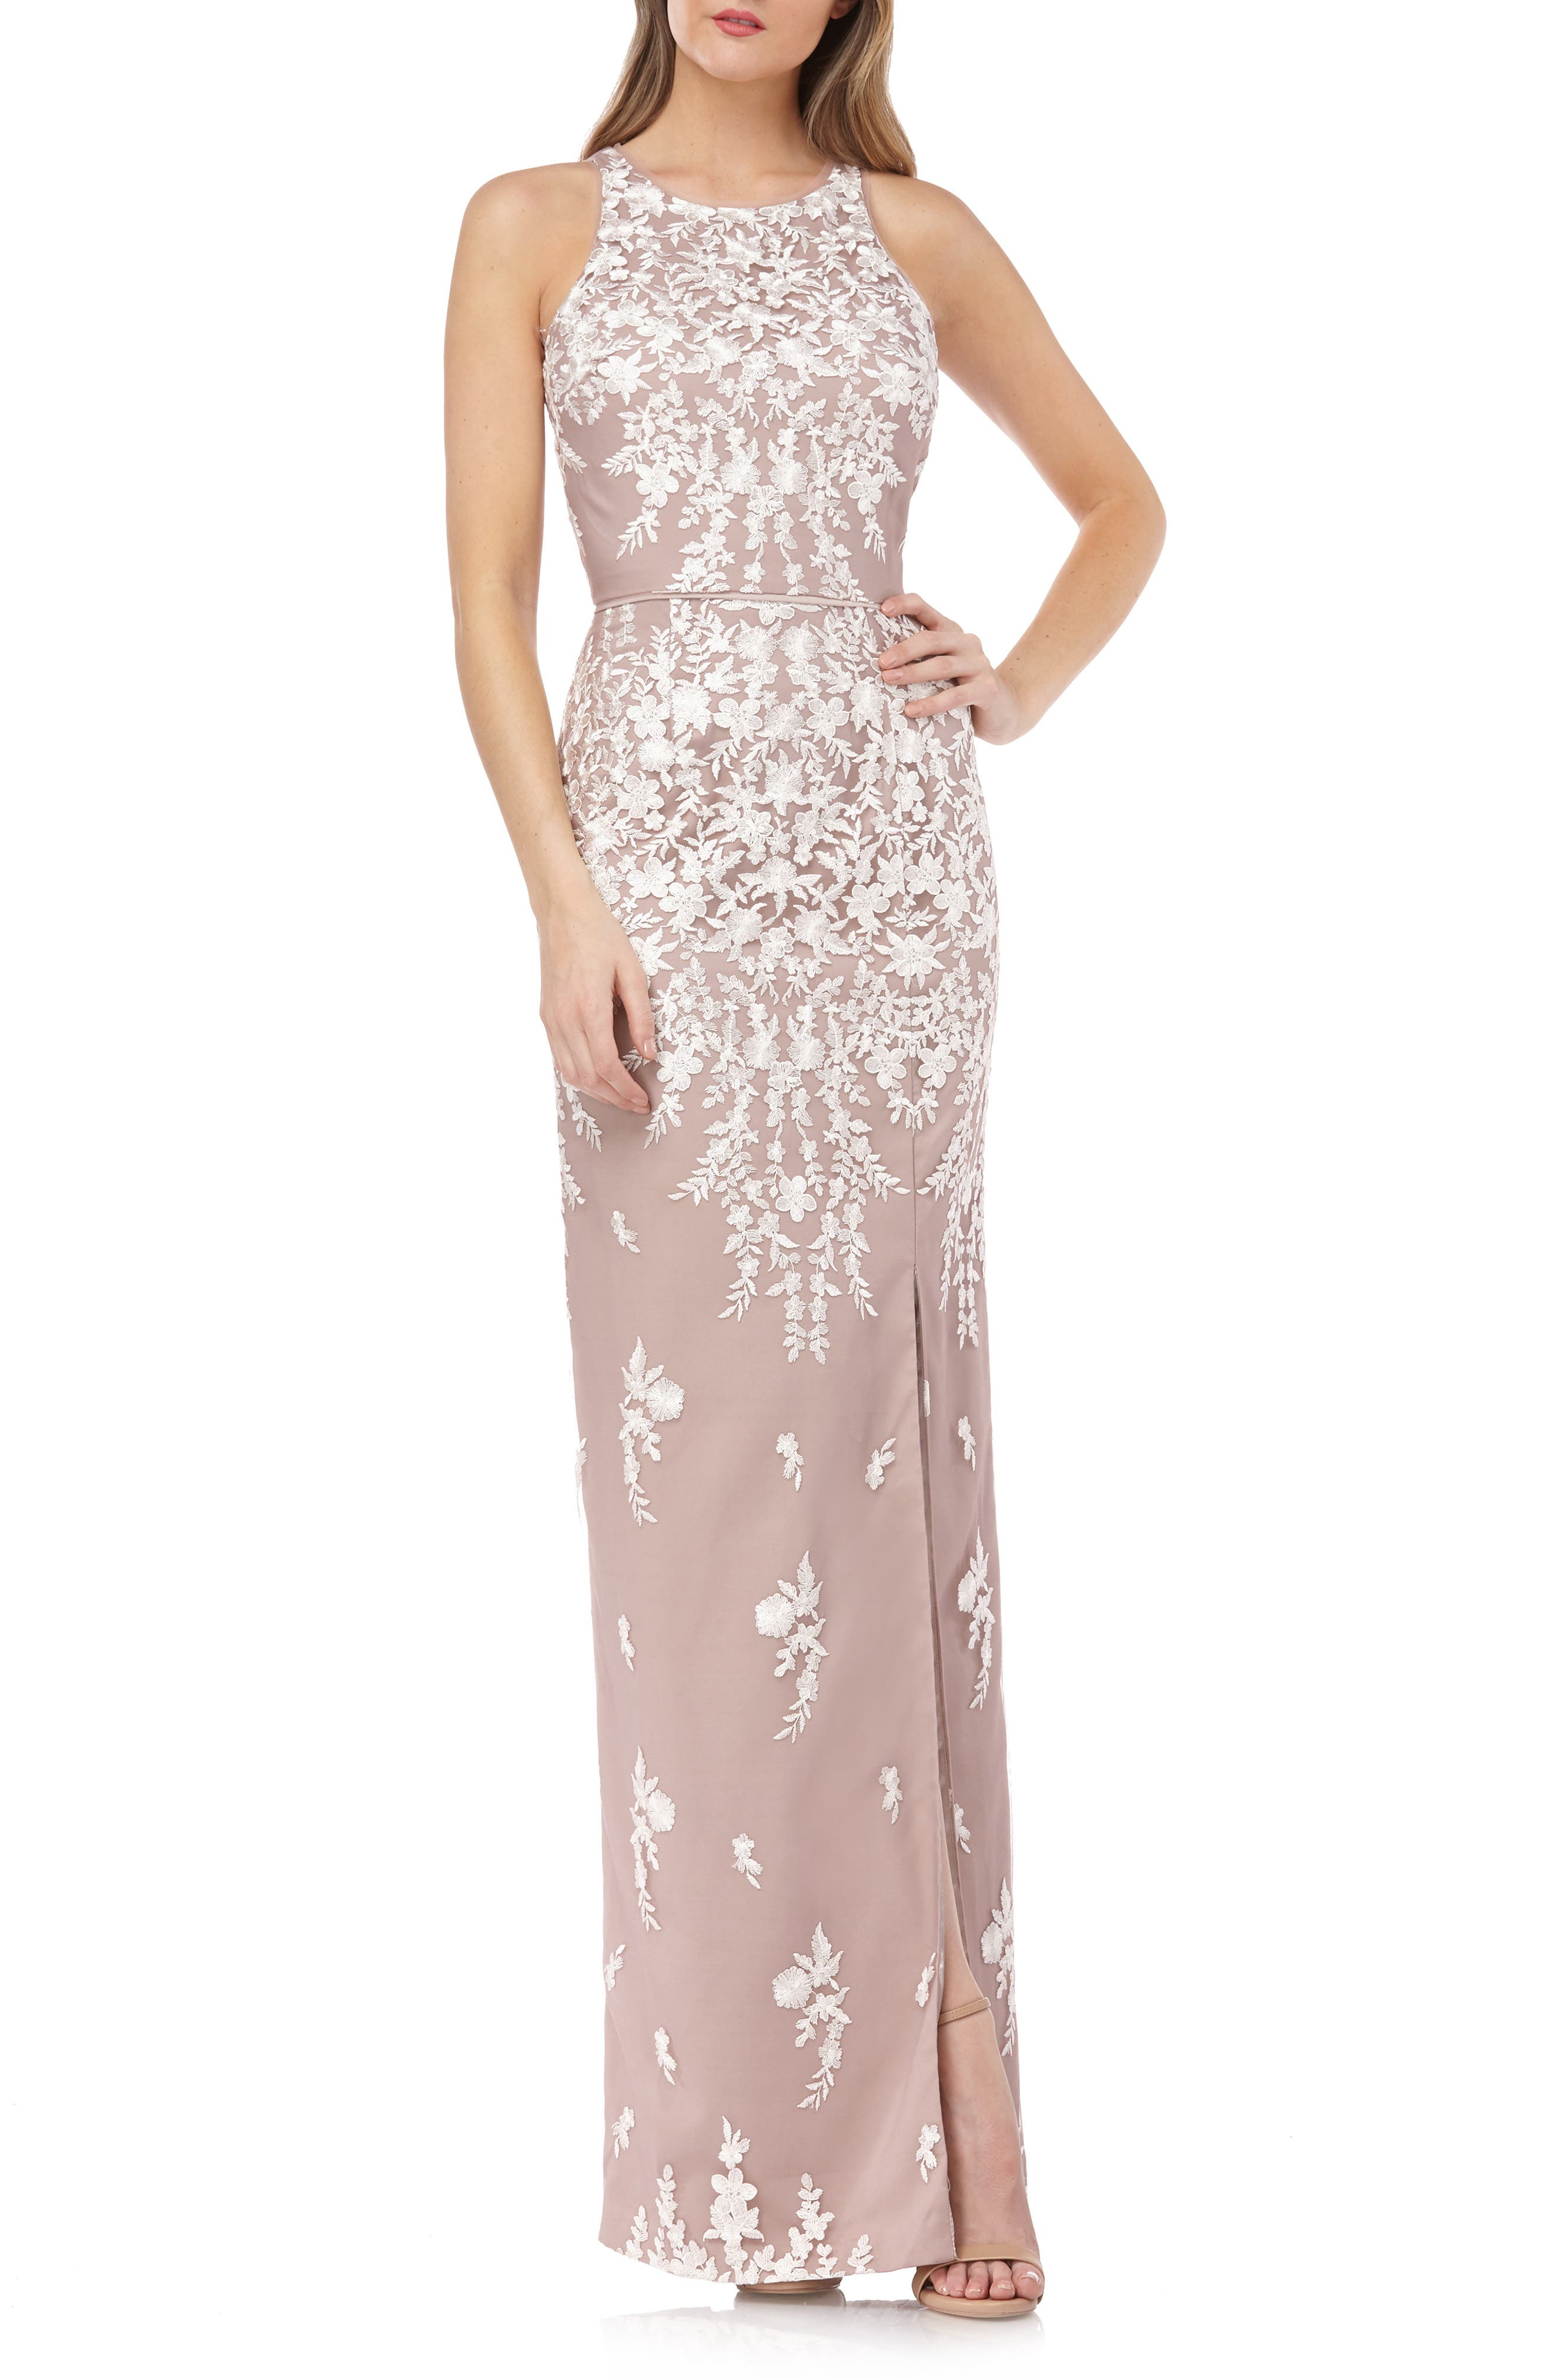 Js Collections Floral Embroidered Mesh Evening Dress, Pink